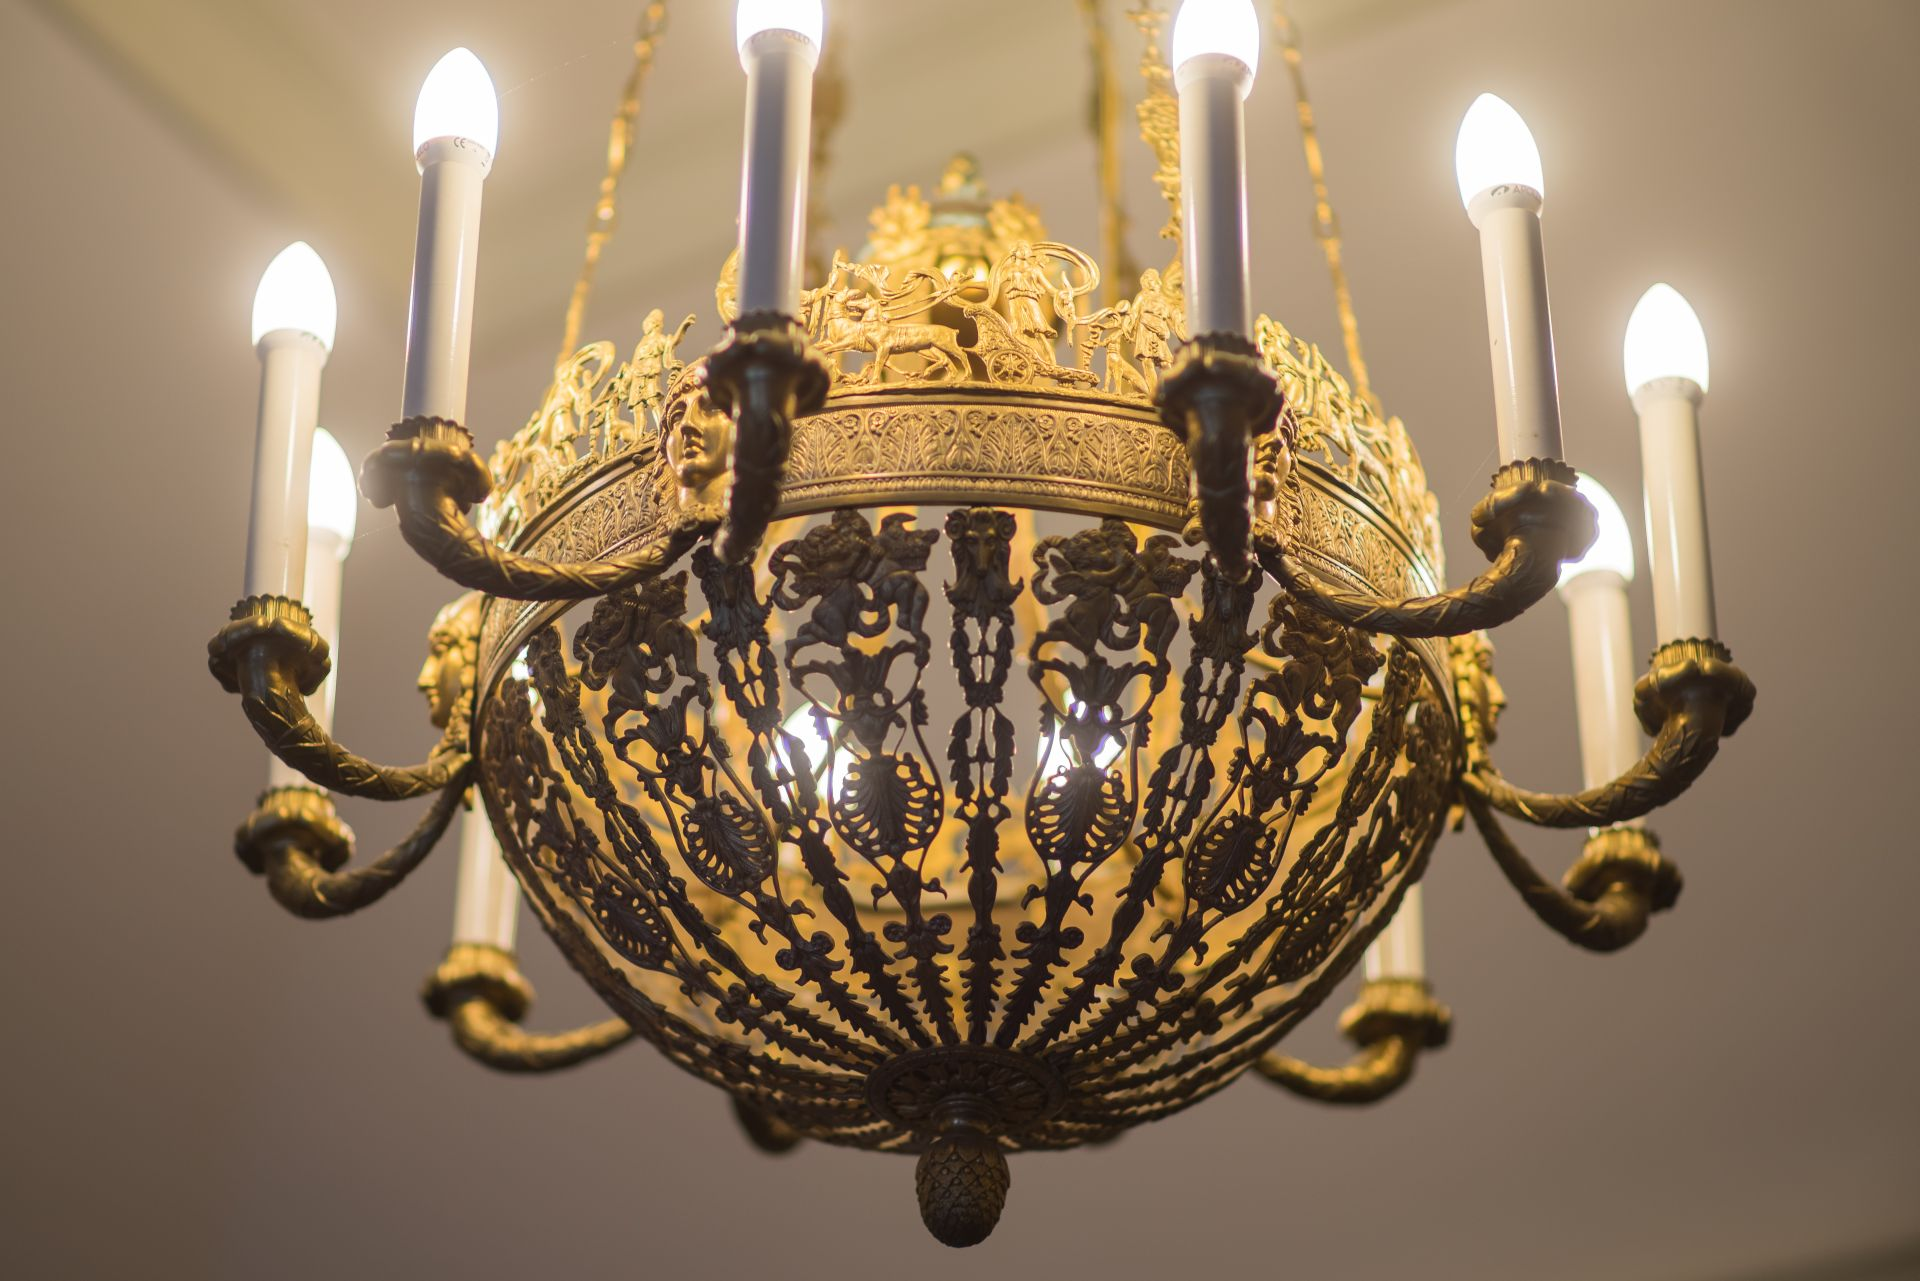 Fragment of chandelier, 1800–1829, Archdiocese of Vilnius. Photo by Povilas Jarmala, 2017